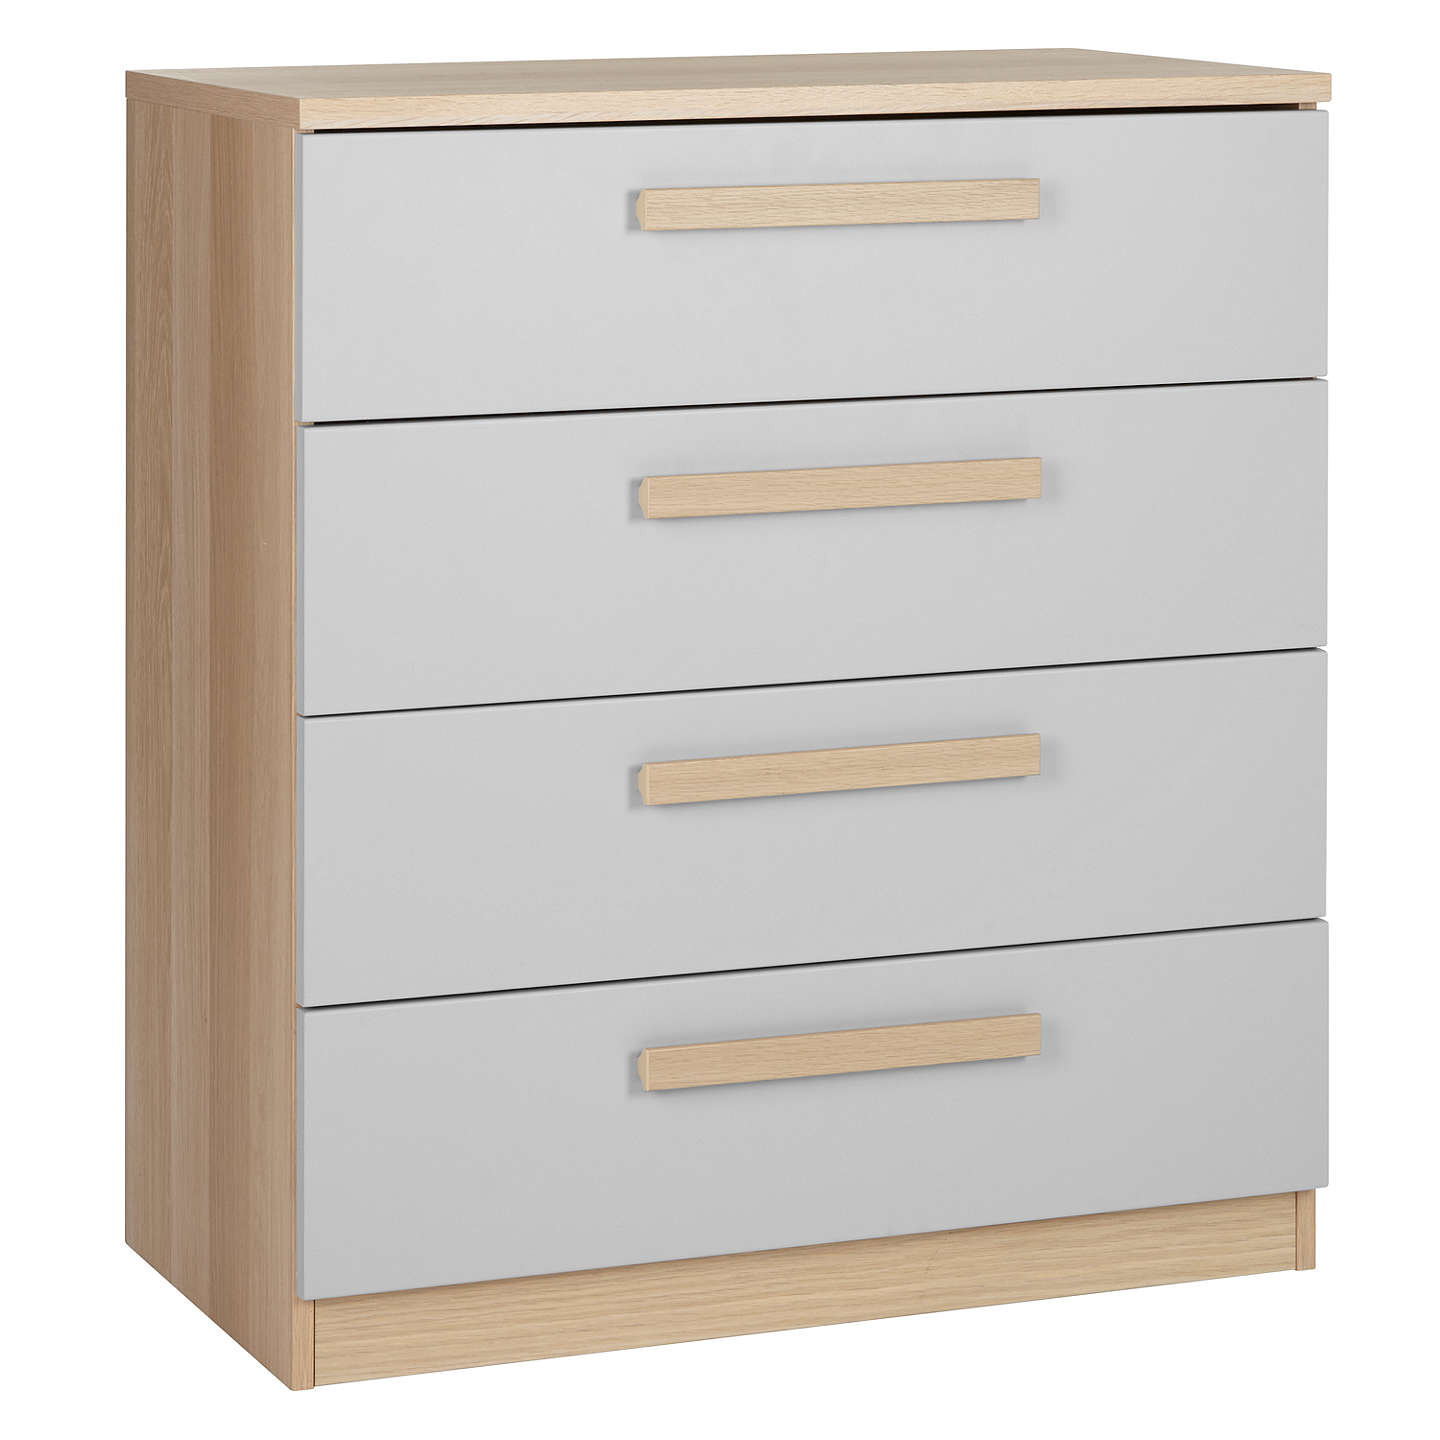 BuyHouse by John Lewis Mix it Block Handle Wide 4 Drawer Chest, House Smoke/Natural Oak Online at johnlewis.com